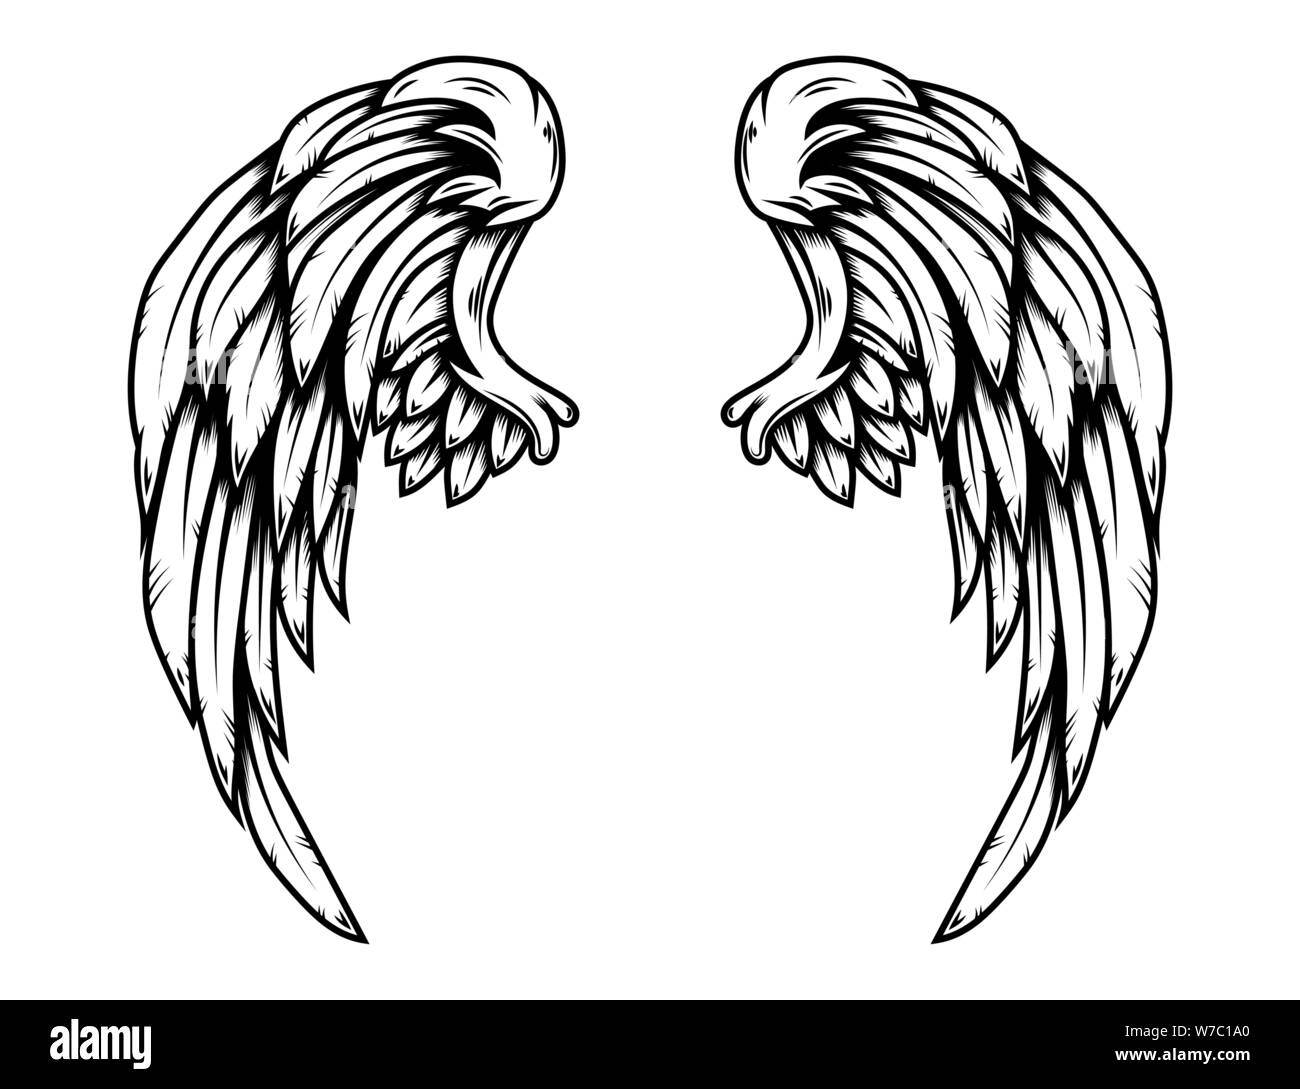 eagle wings in tattoo style isolated on white background design element for poster t shirt card emblem sign badge vector illustration stock vector image art alamy https www alamy com eagle wings in tattoo style isolated on white background design element for poster t shirt card emblem sign badge vector illustration image262722600 html